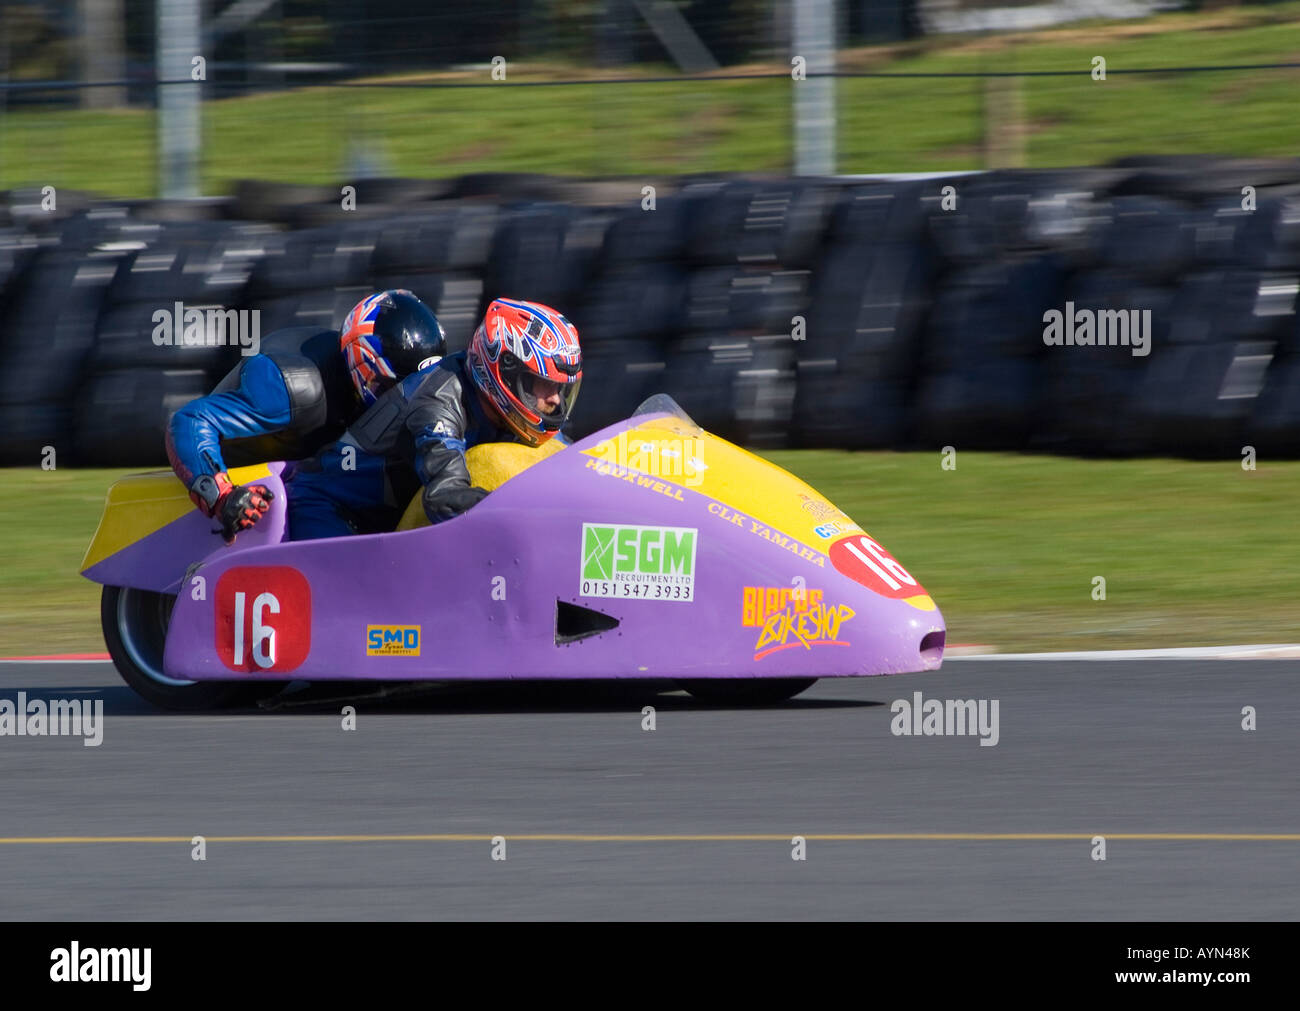 Motor cycle racing oulton park stock photos motor cycle for National motor club compensation plan